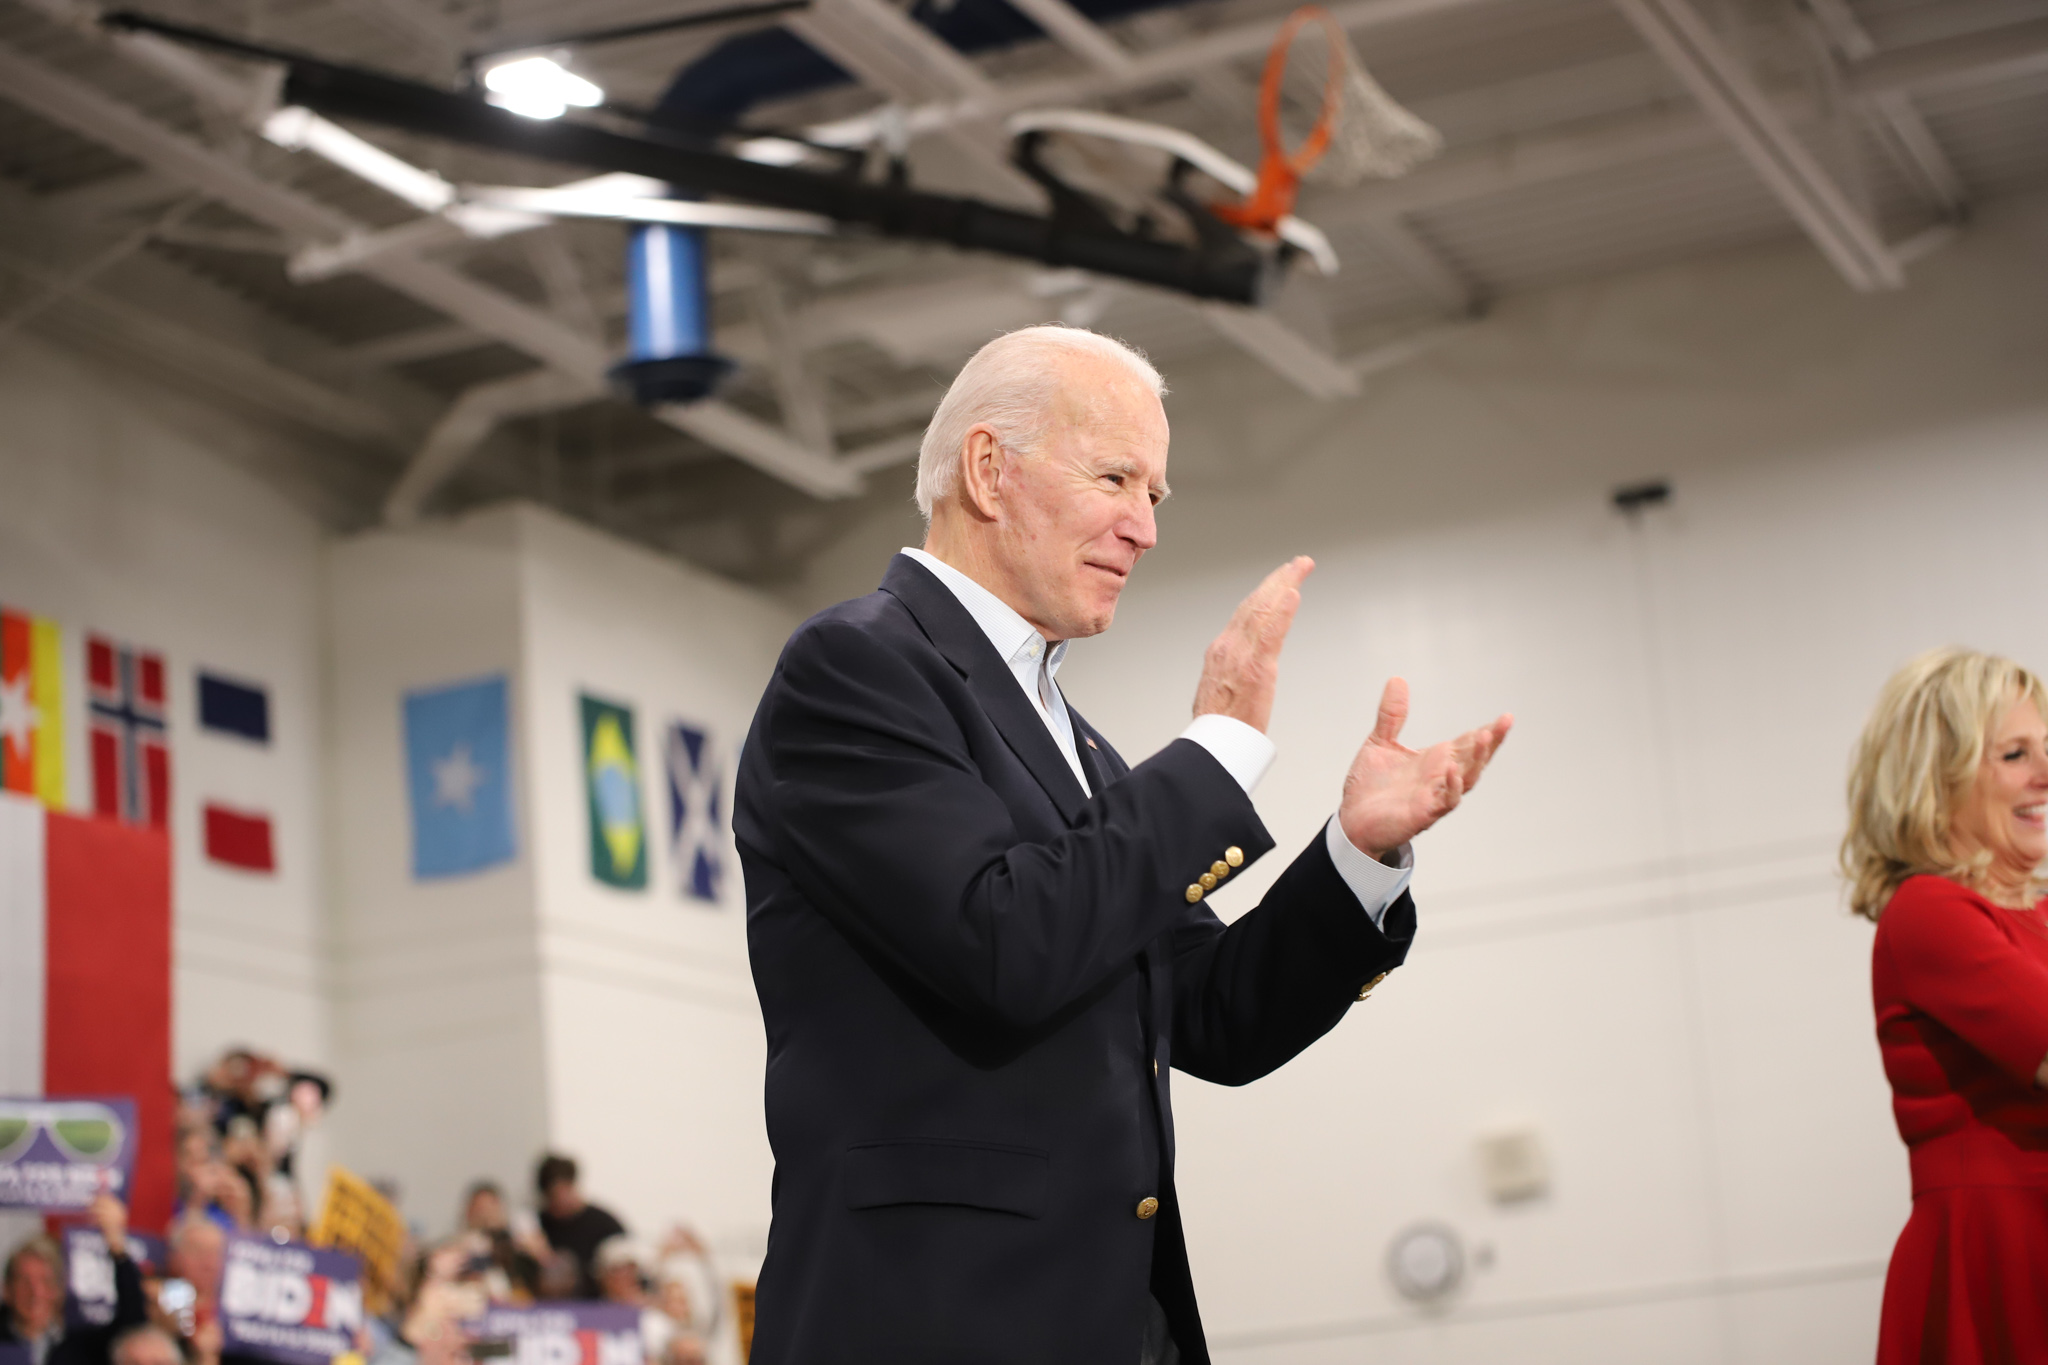 Biden clapping with wife, Jill, at campaign event. (Brita Hunegs, 14 East)